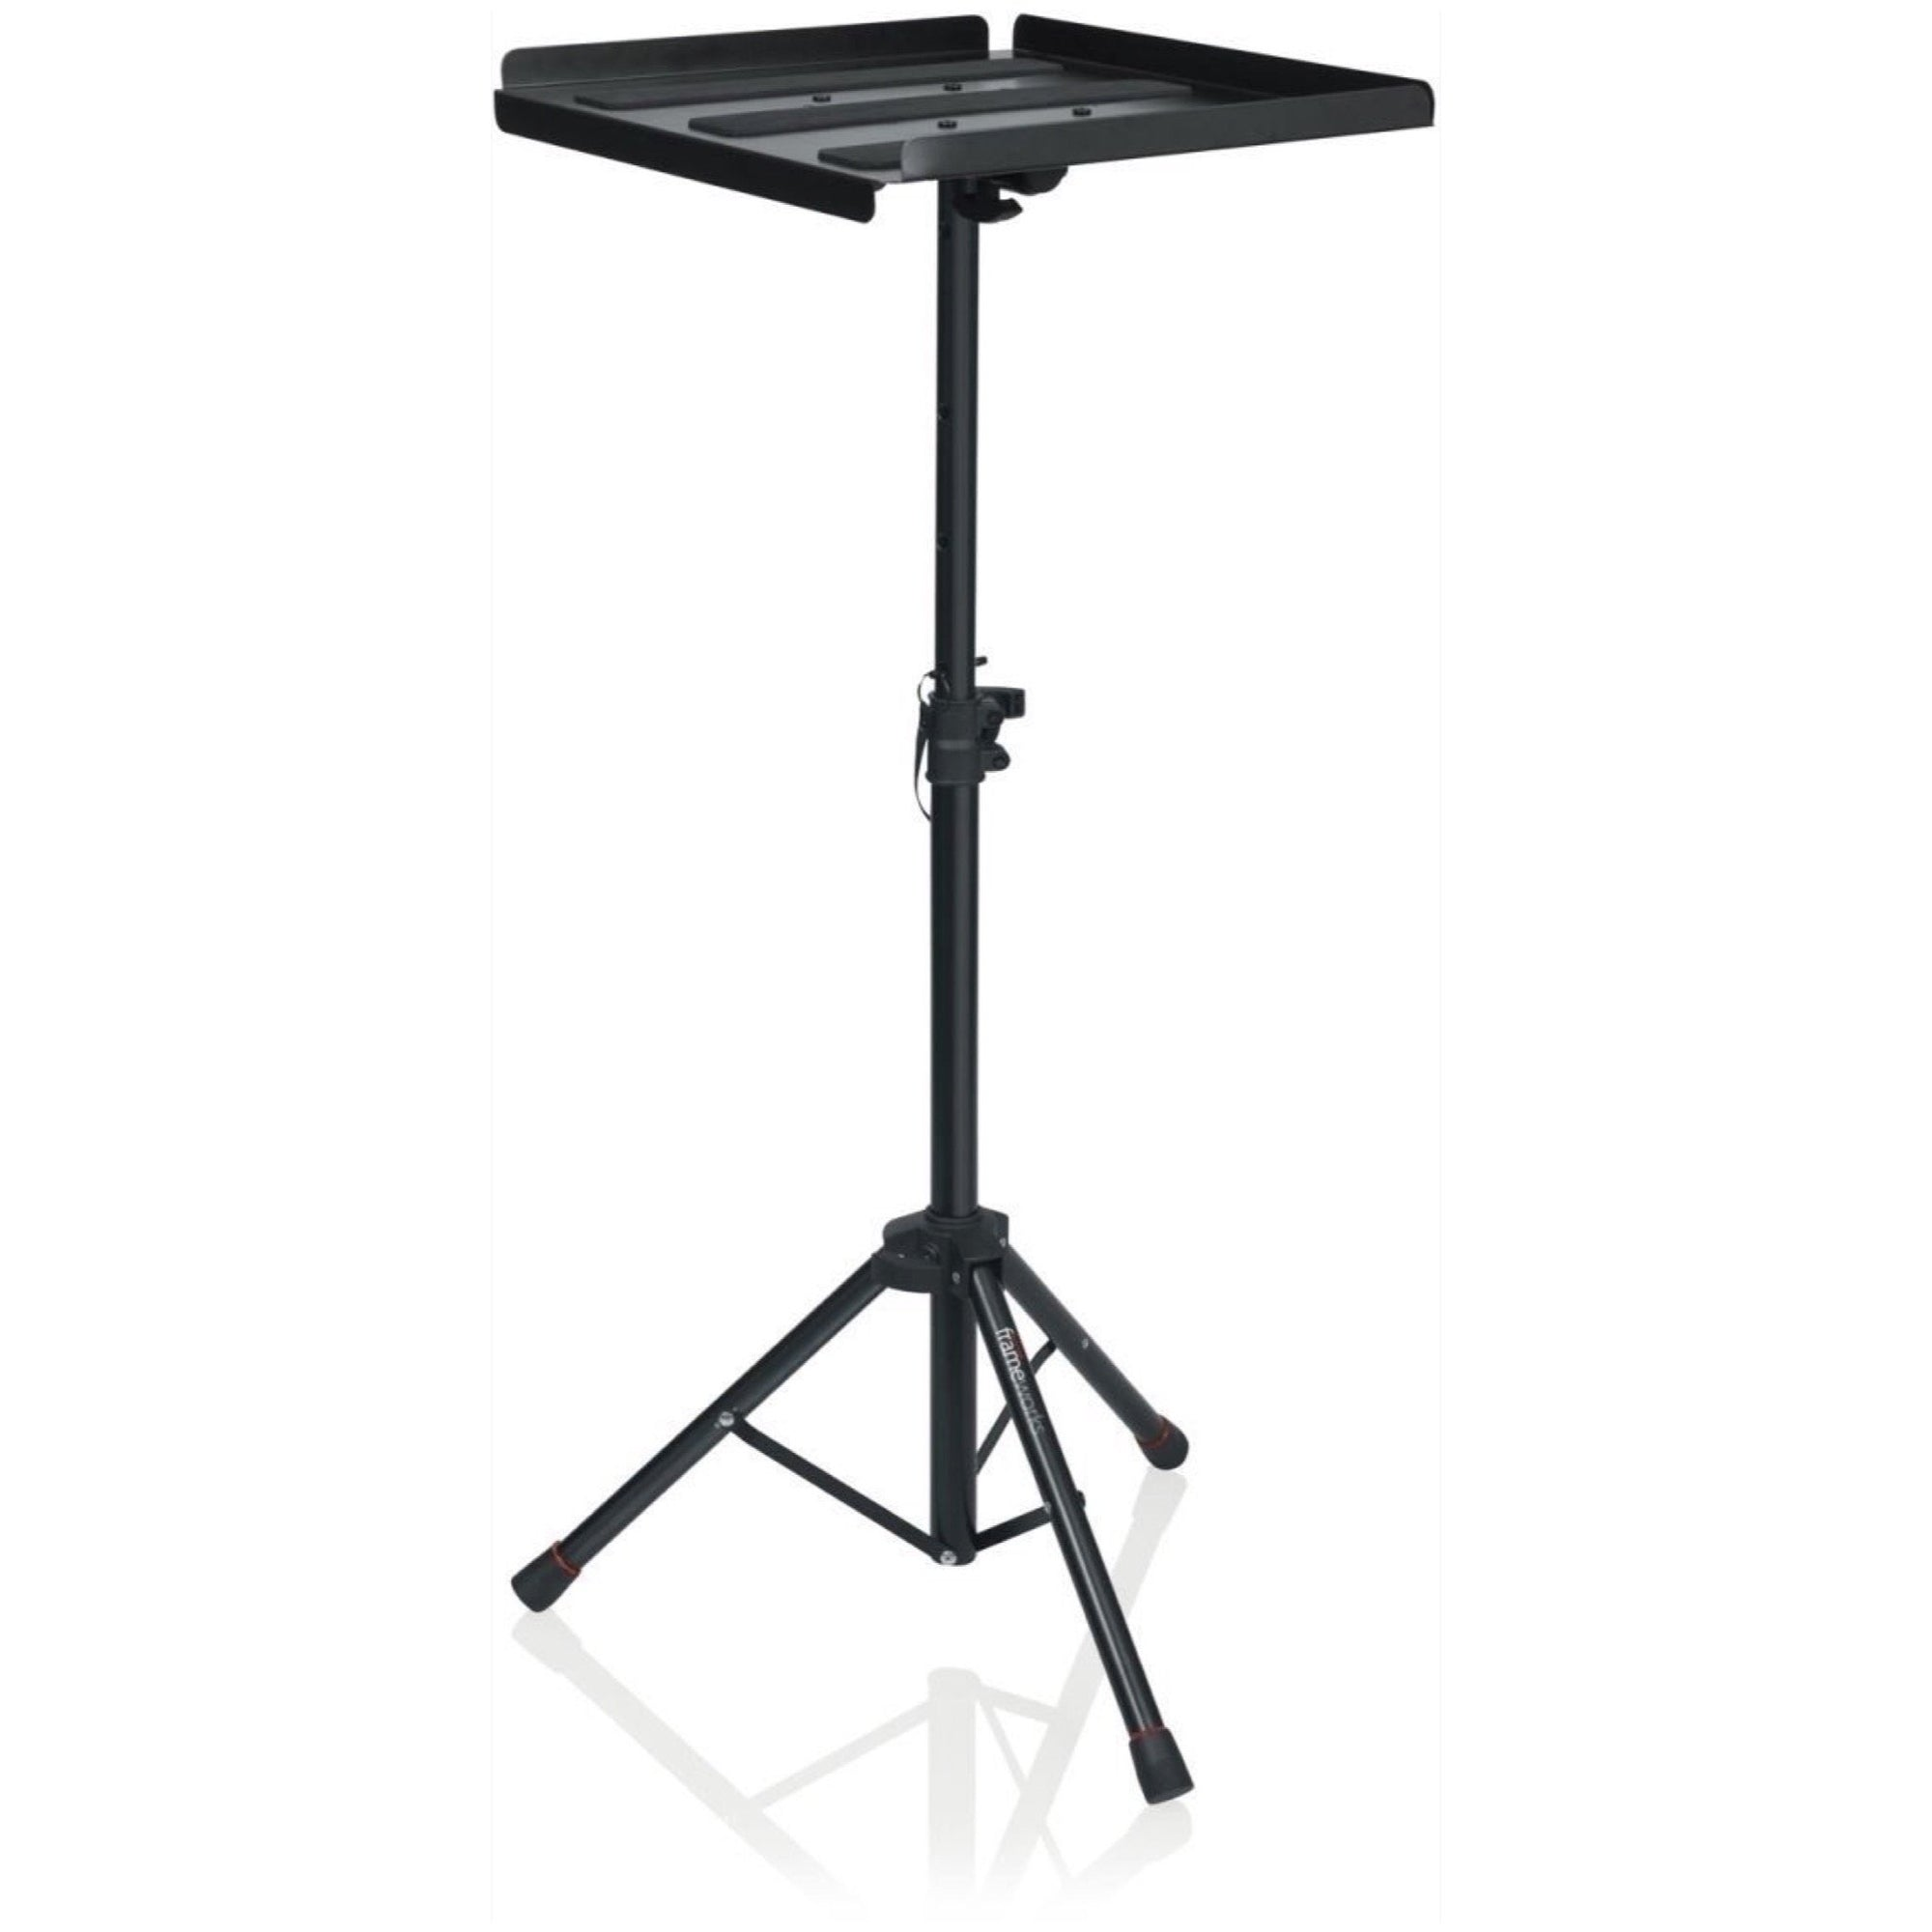 Gator Frameworks Heavy-Duty Adjustable Media Tray with Tripod Stand